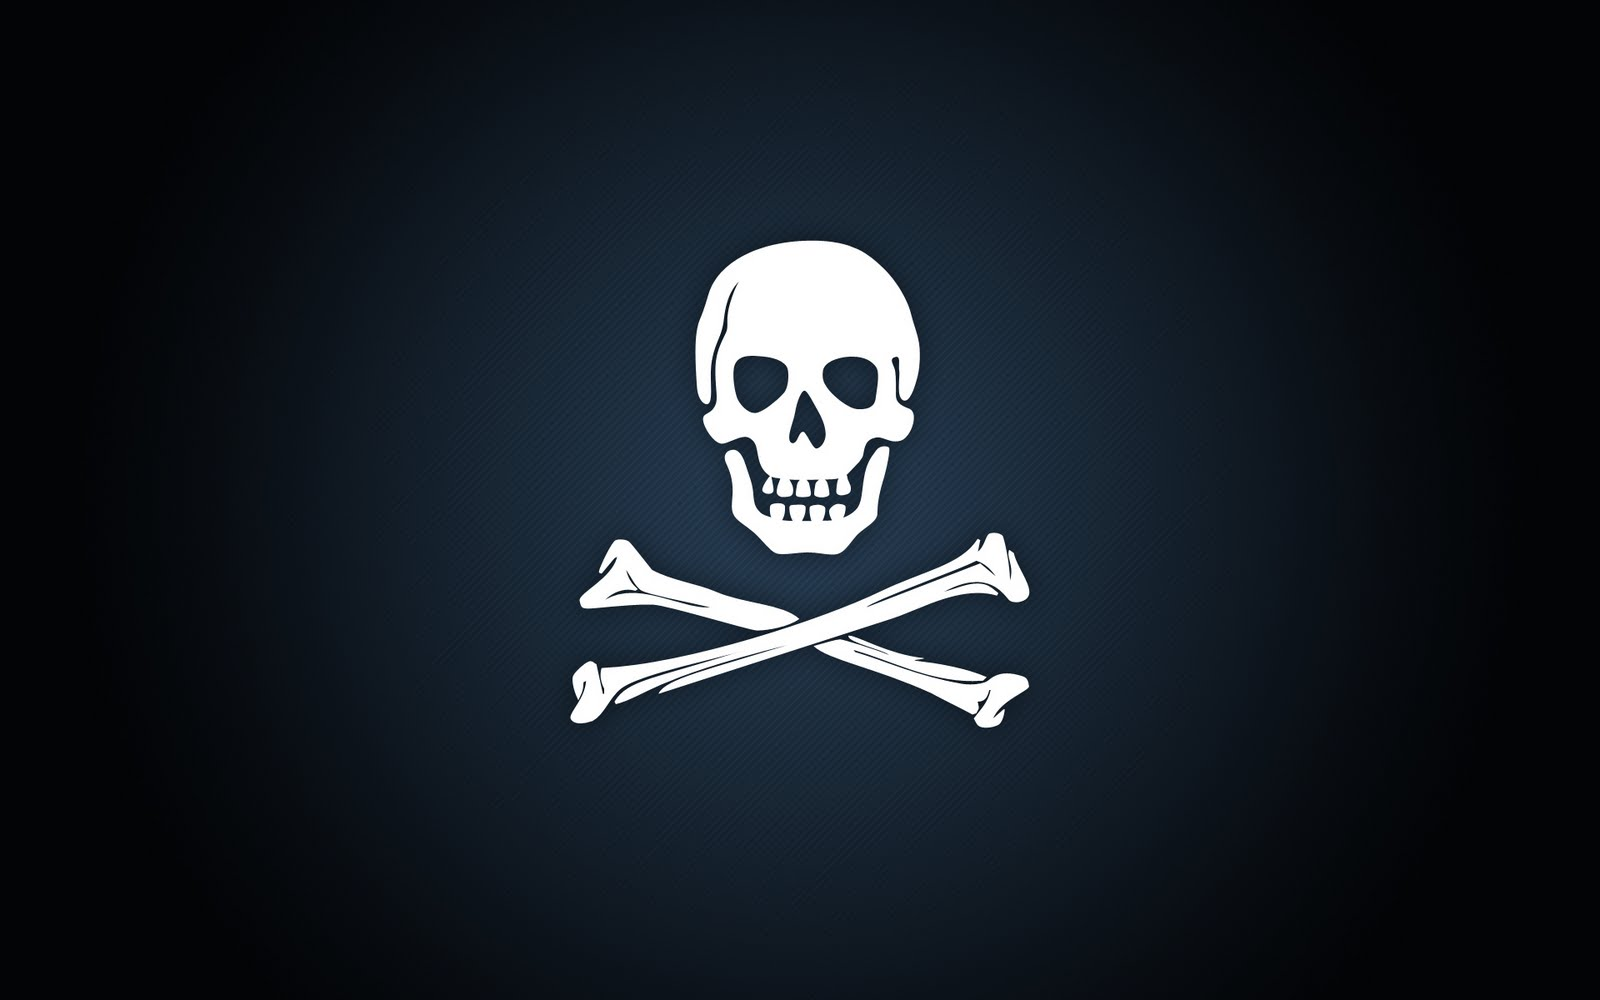 Planet Wallpapers: Pirate skull and crossbones stencil